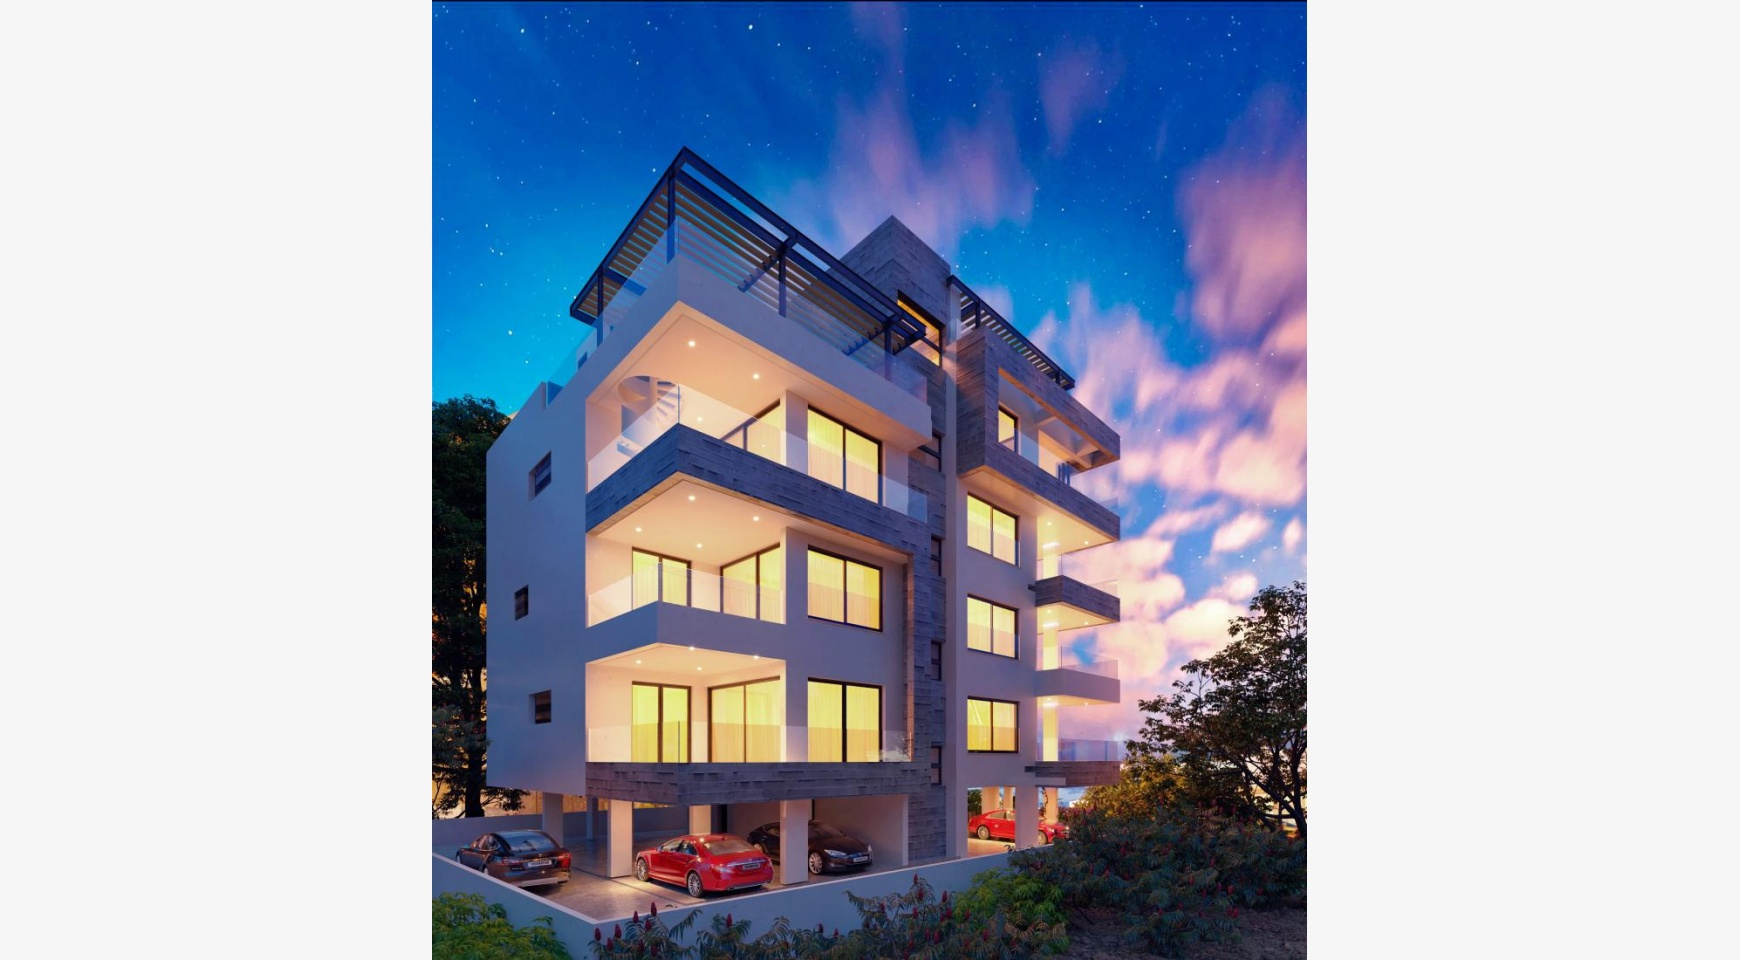 3 Bedroom Penthouse with a Private Pool in a Contemporary Building near the Sea - 3